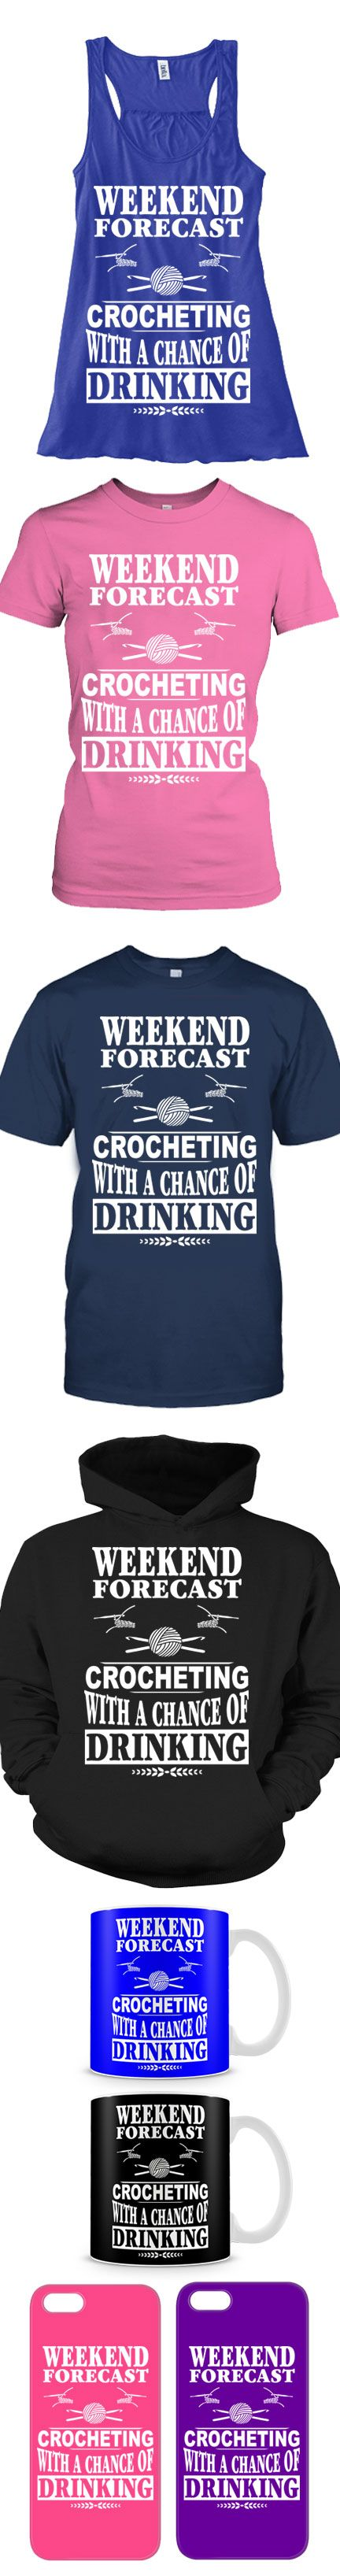 Love Crocheting On Weekends? Then Click The Image To Buy It Now or Tag Someone You Want To Buy This For.